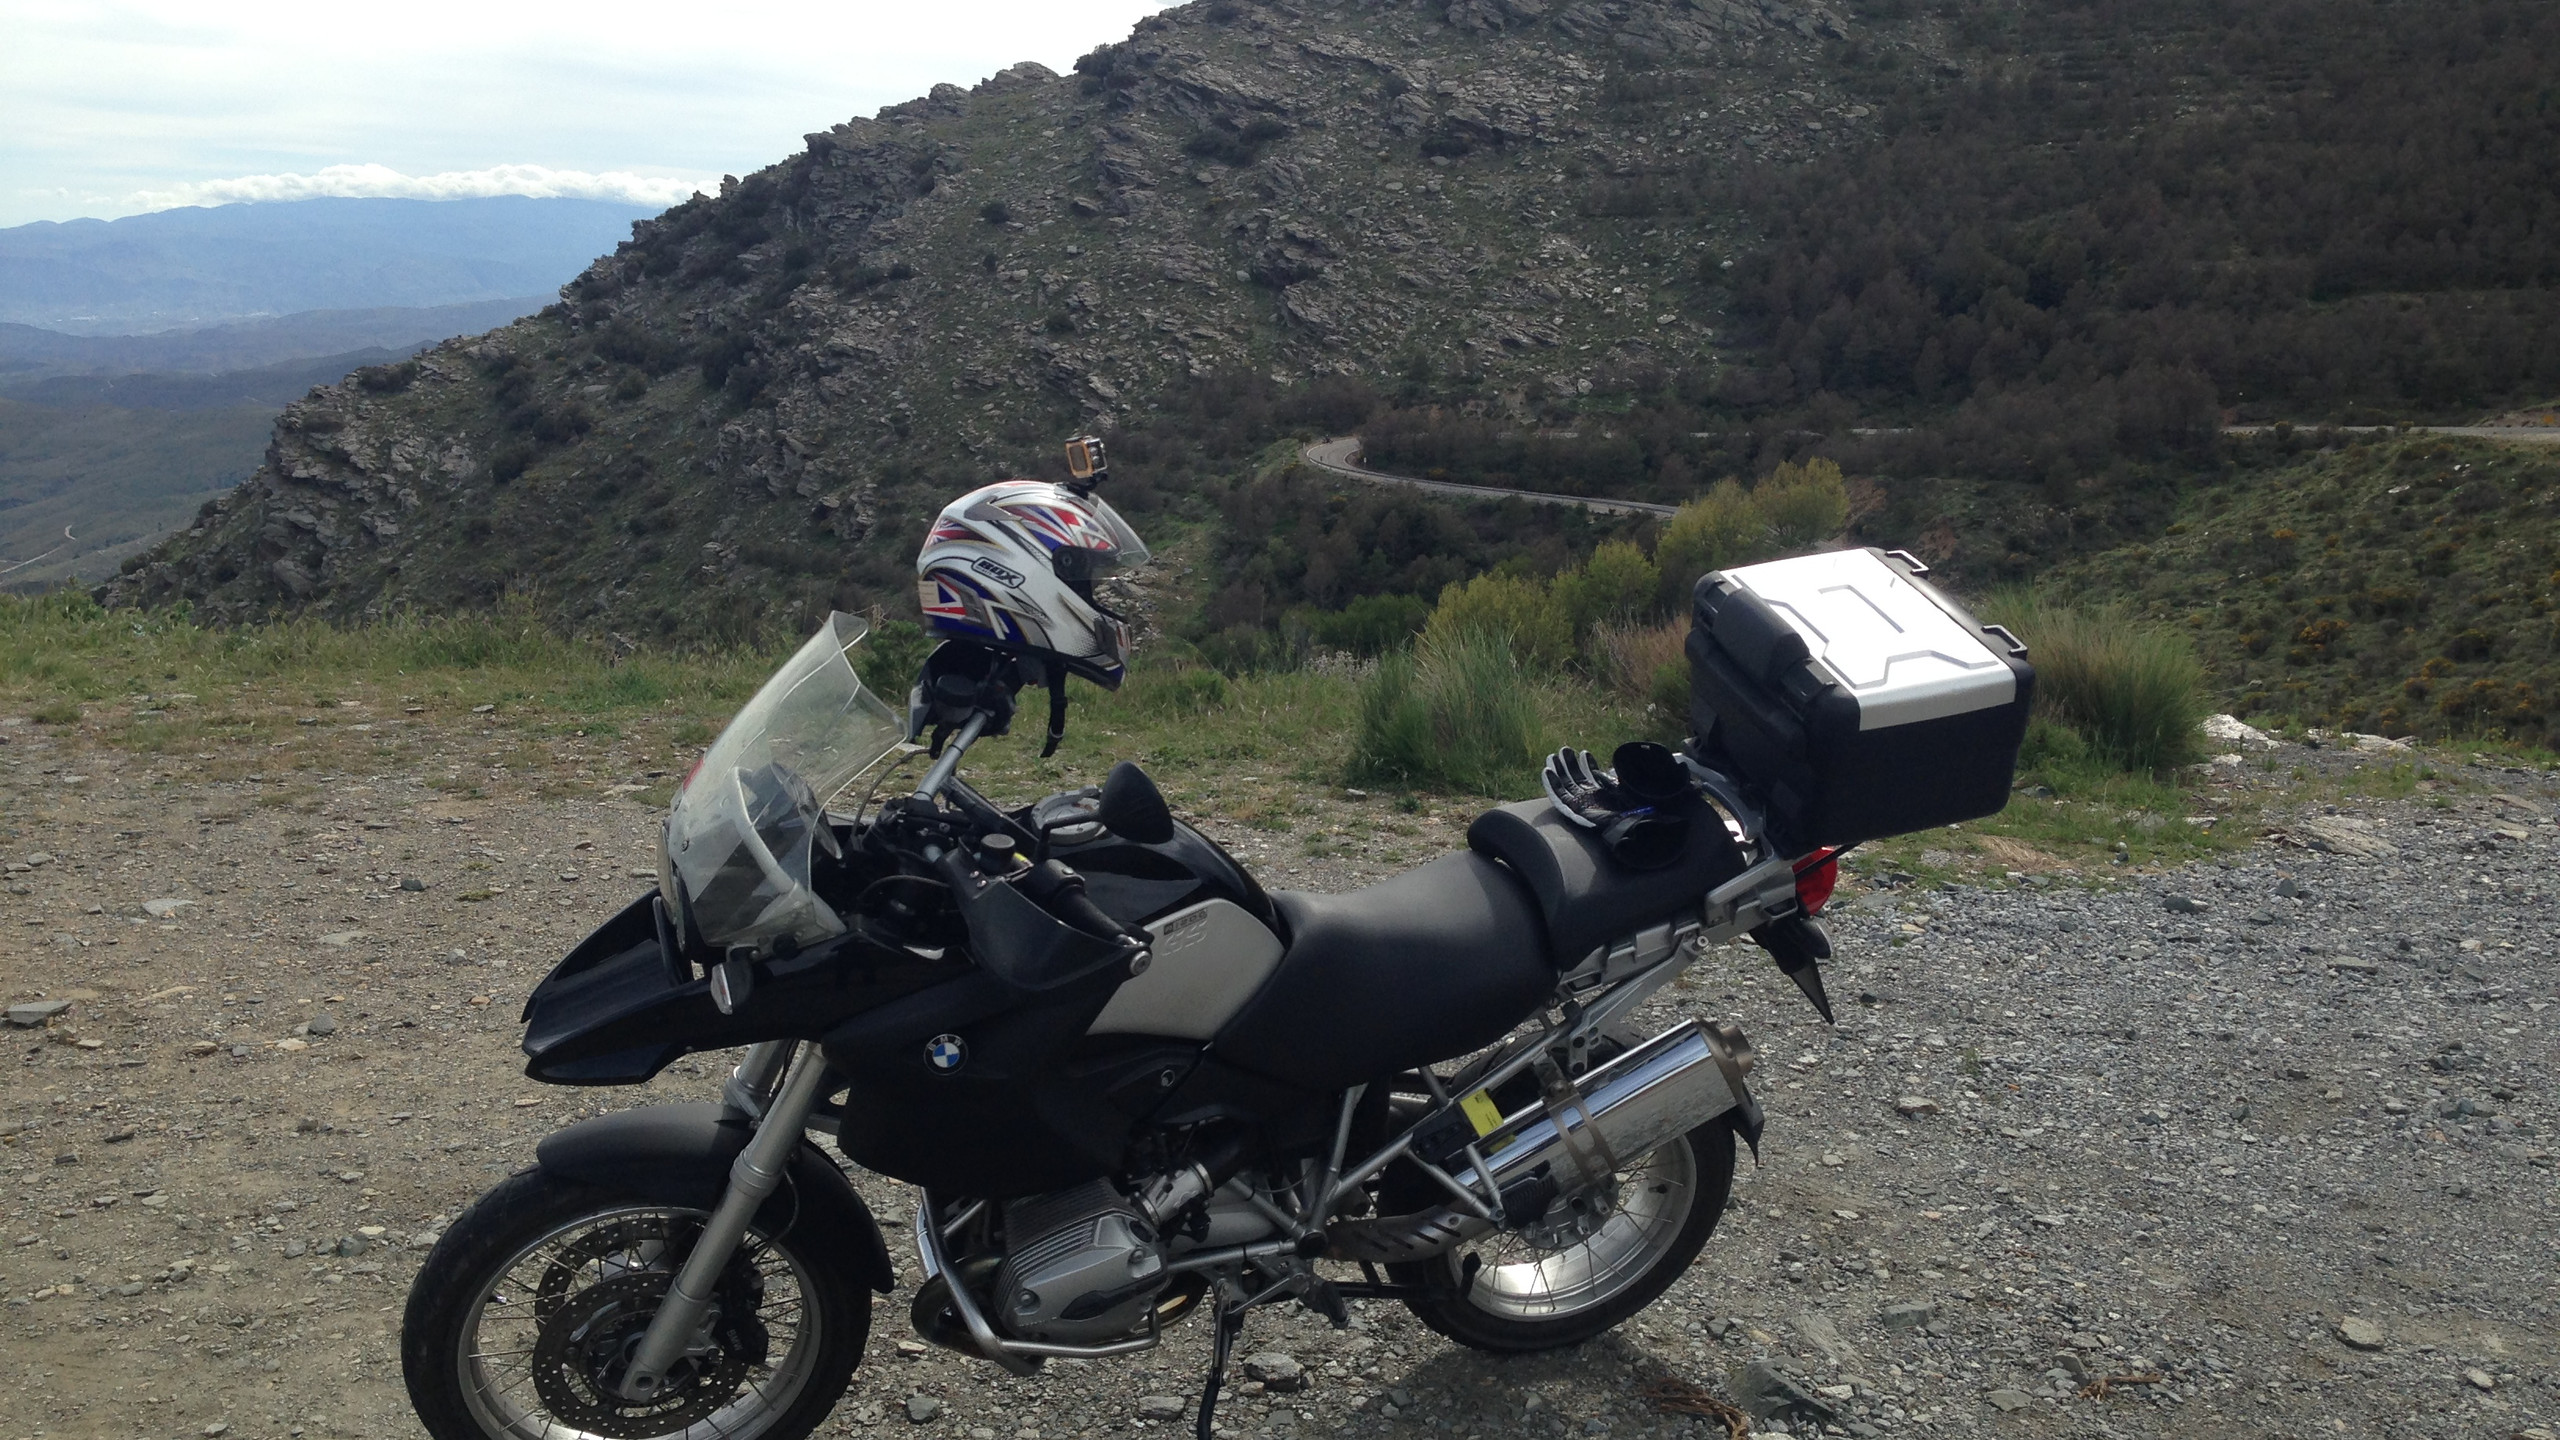 One of the BMW Motorrad's available to hire